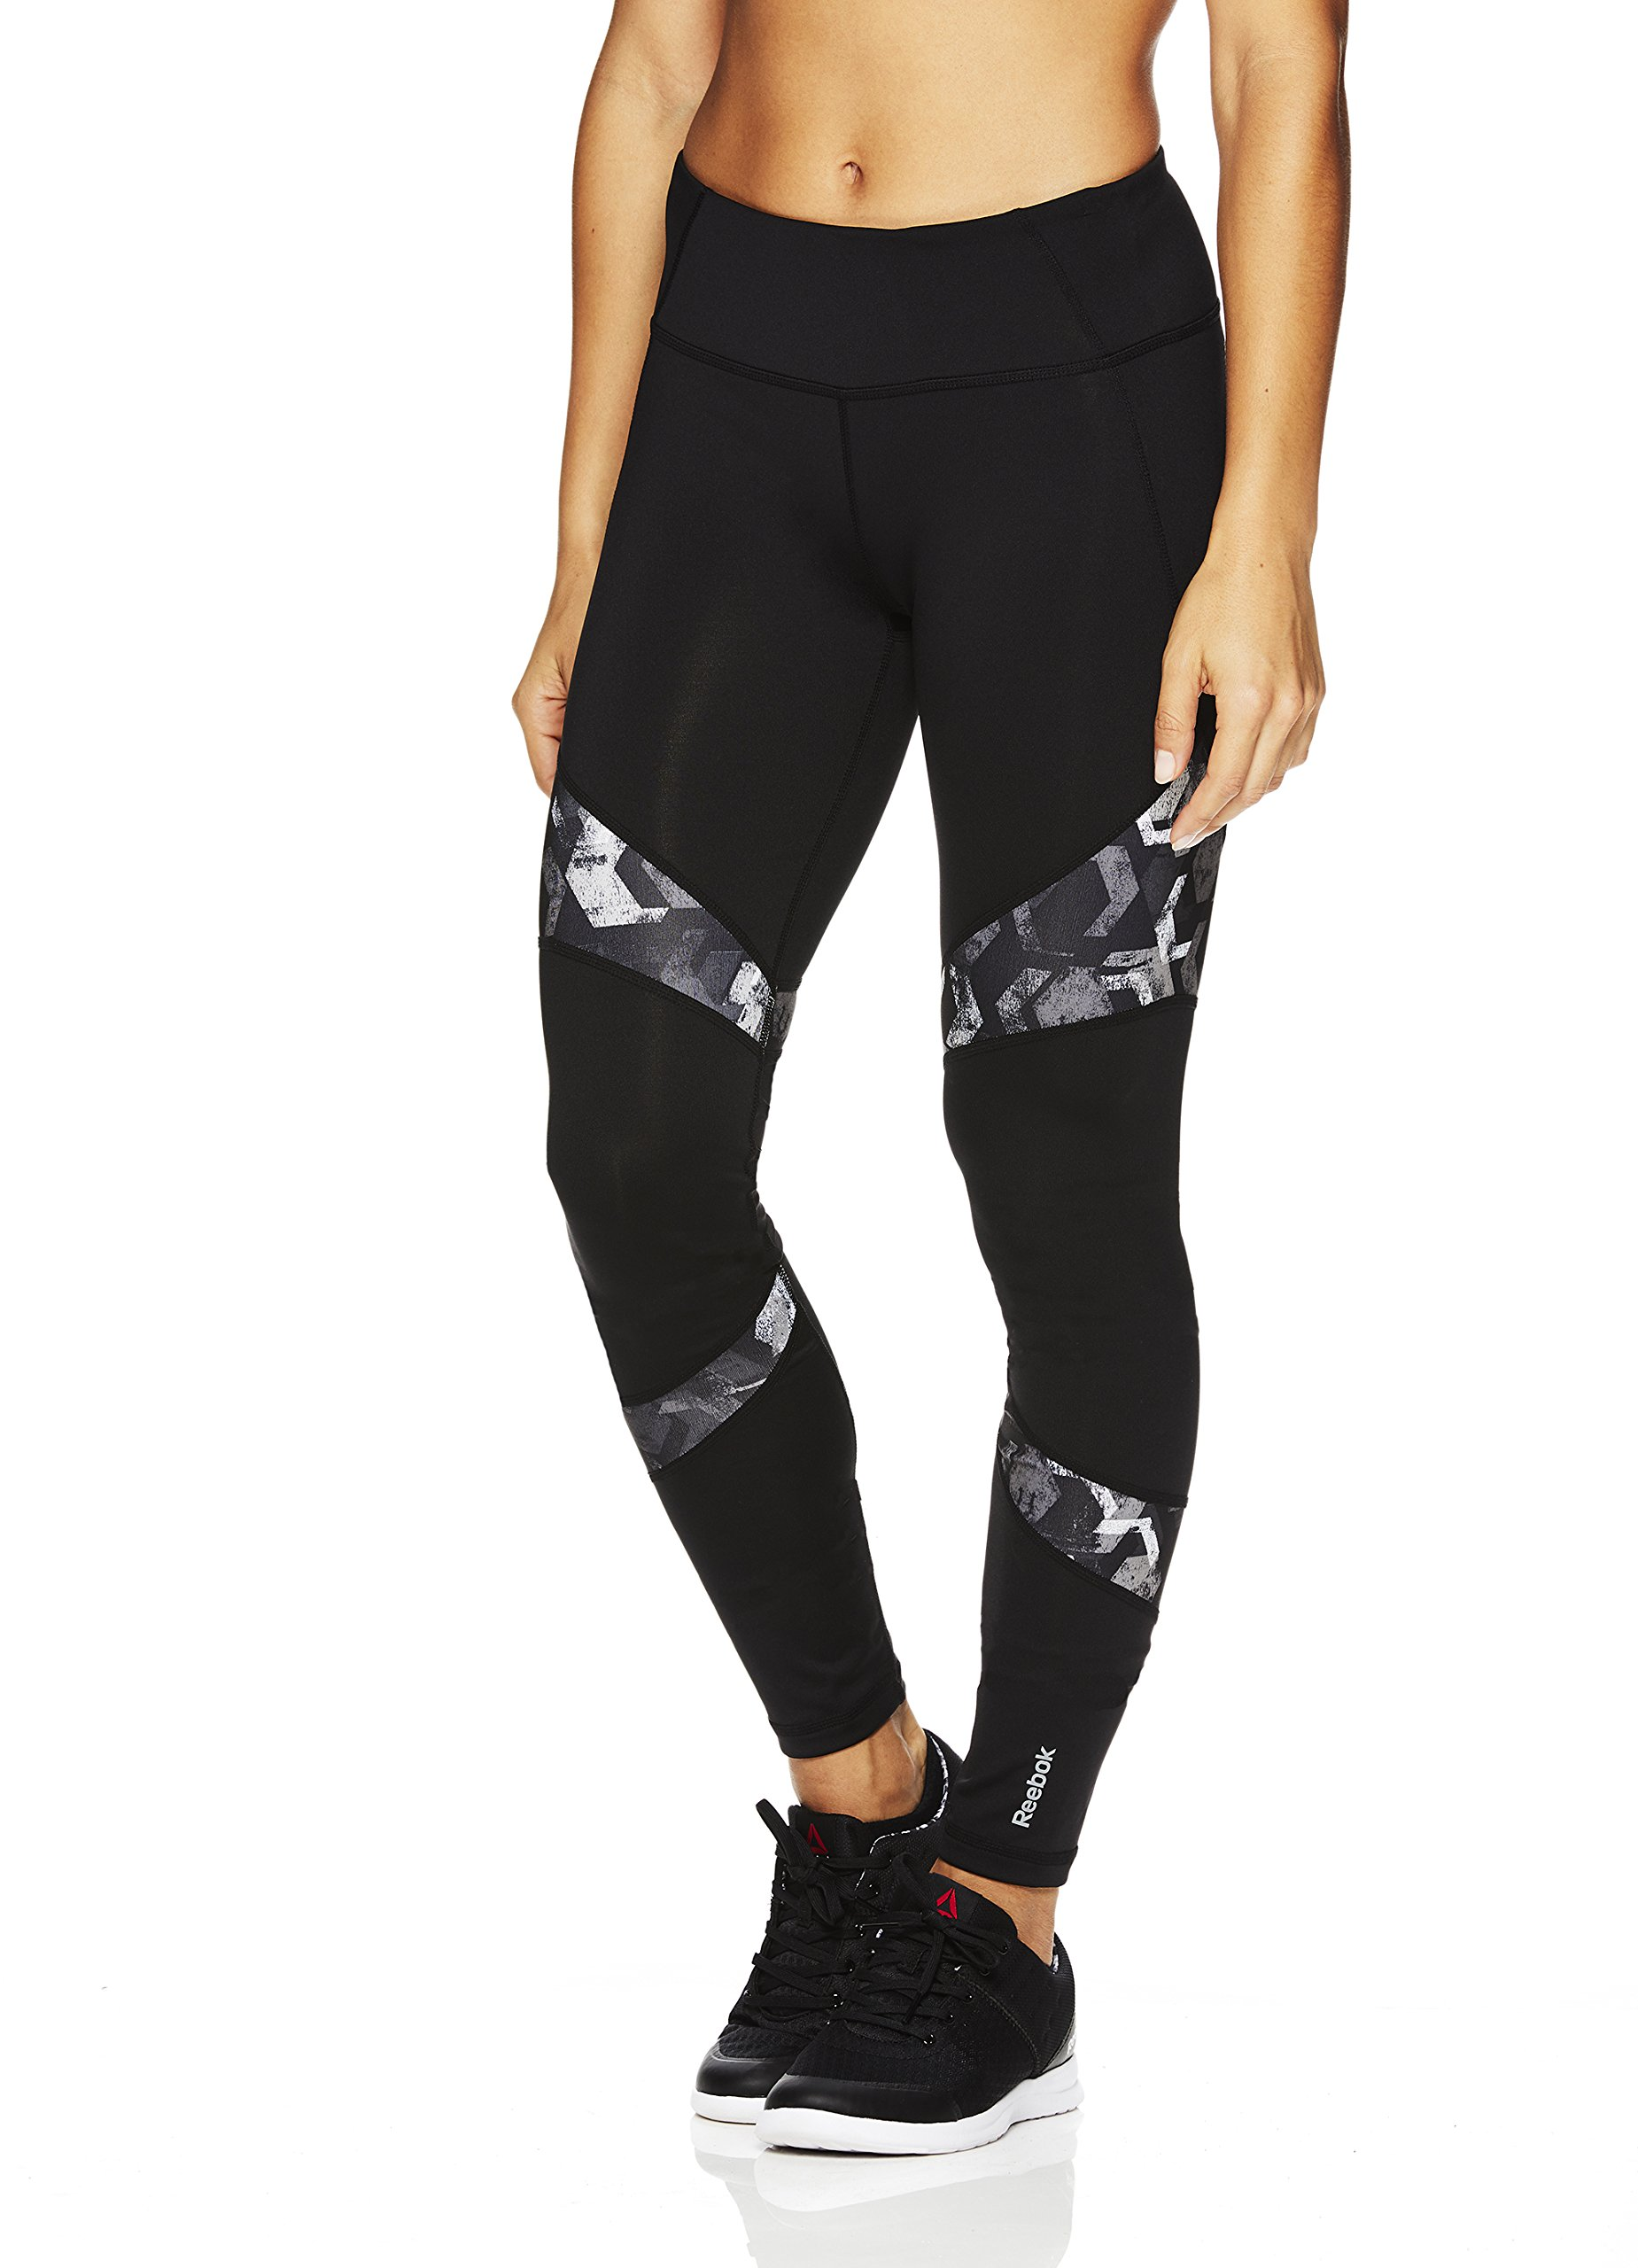 Reebok Womens Legging Full Length Performance Compression Pants Geo Black Reah Printed Doku Medium